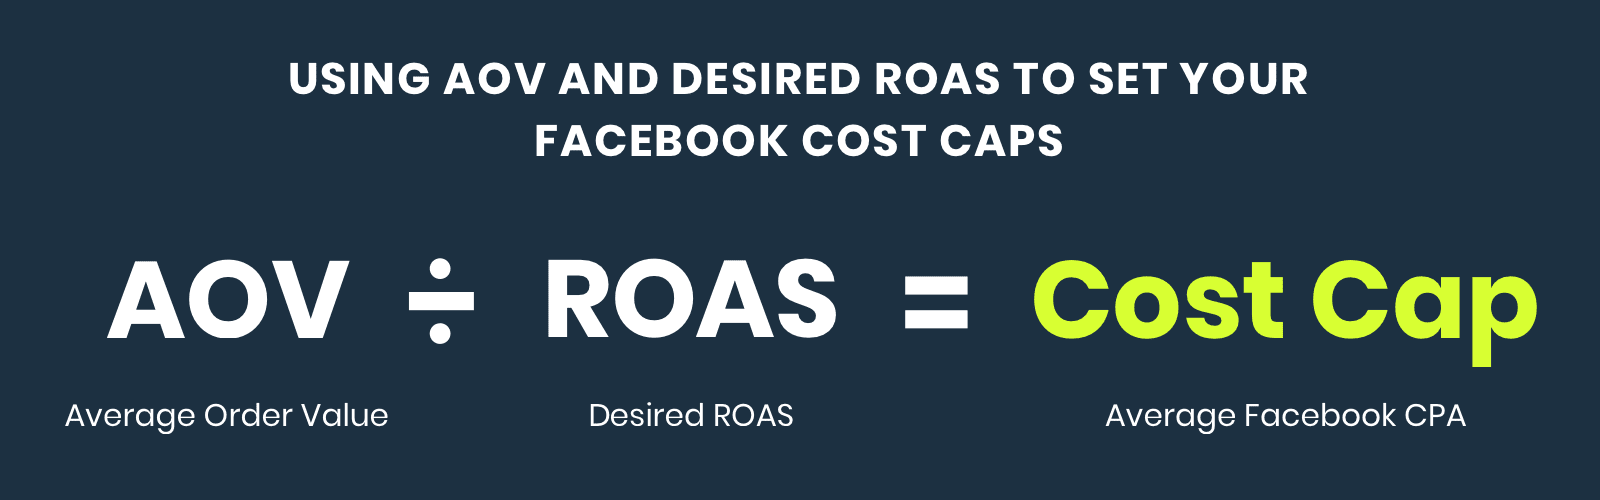 Using AOV and desired ROAS to set your Facebook cost caps: AOV divided by ROAS equals Cost Cap